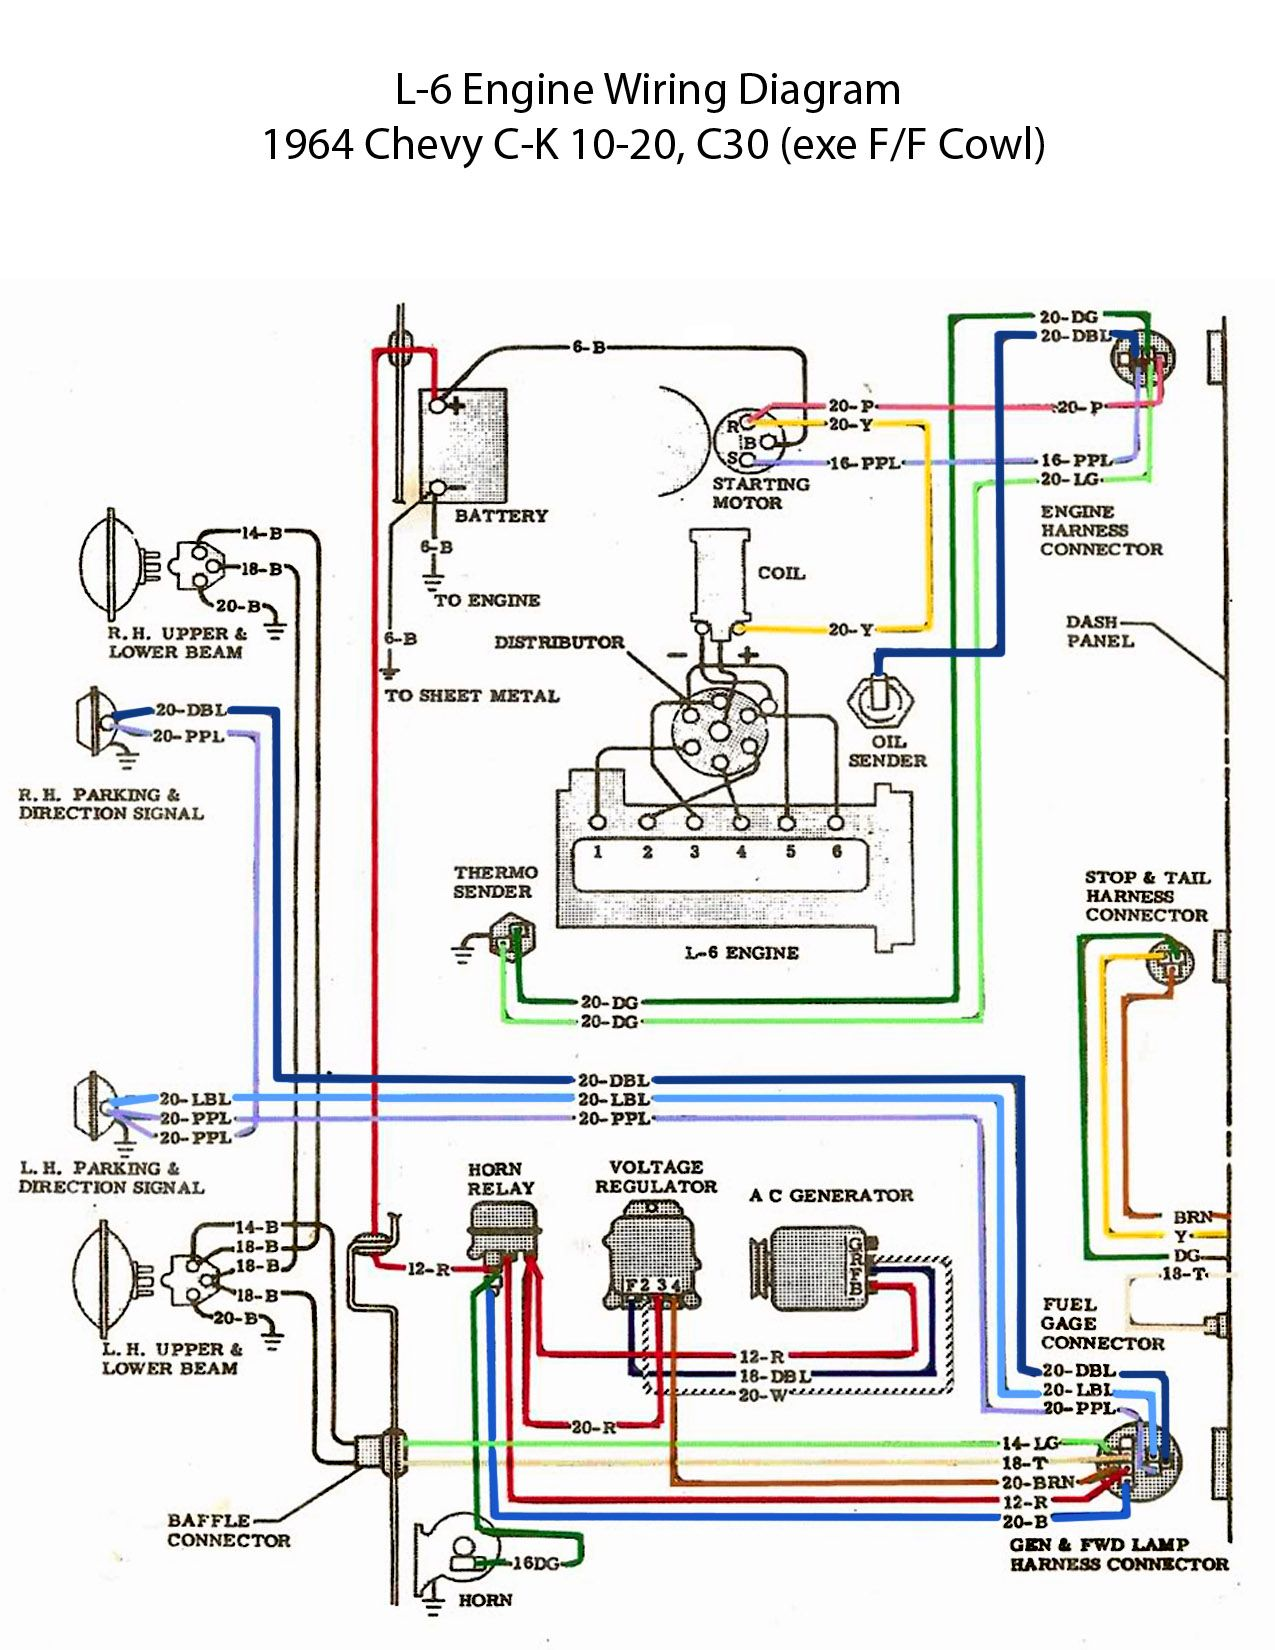 medium resolution of gm alt wiring diagram 1989 3 wire alternator diagram gm alternator rh banyan palace com chevy